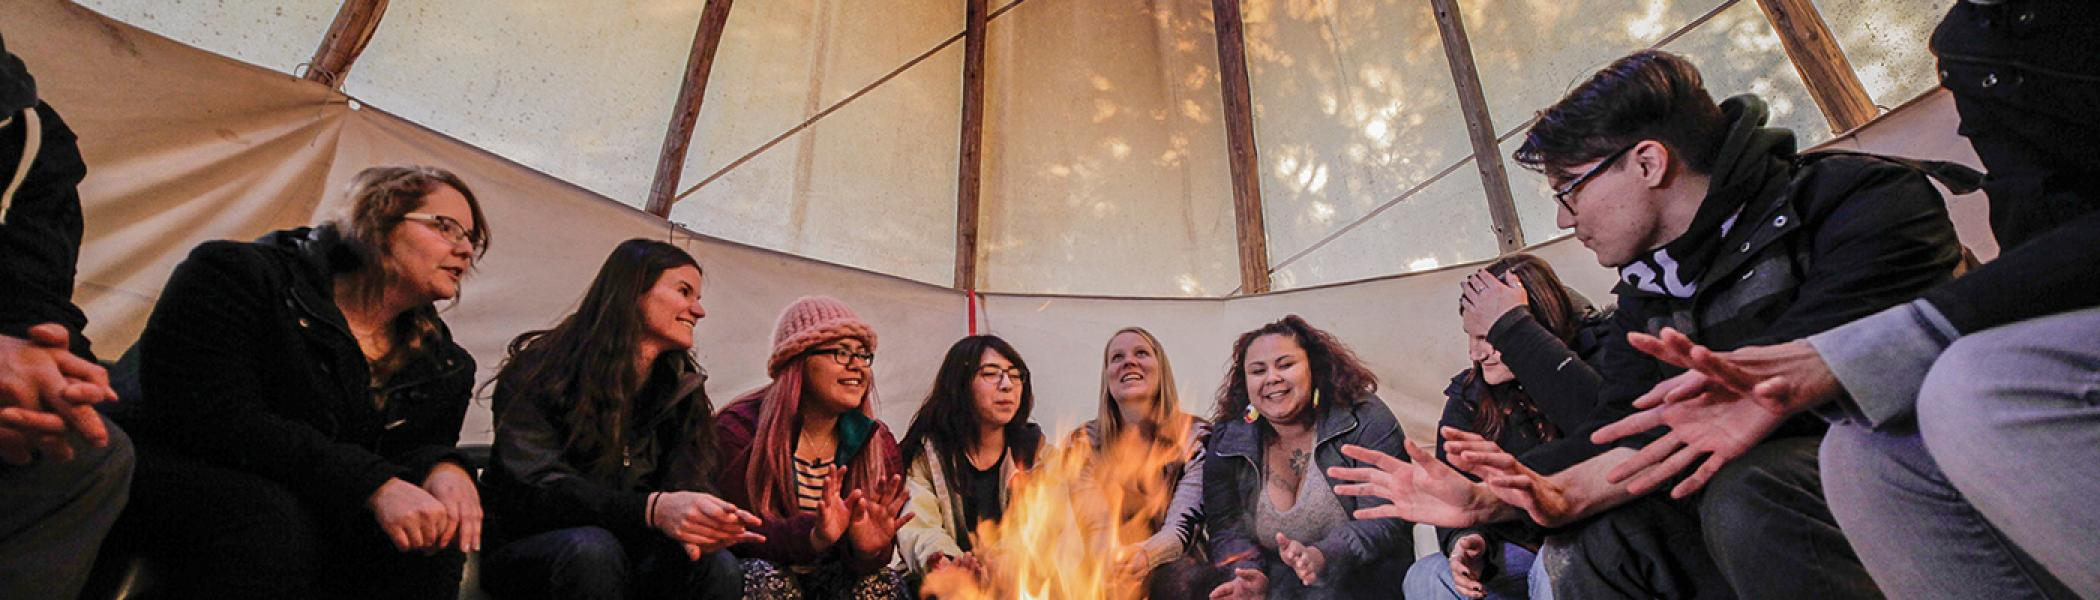 A group of students sitting around a fire in a tipi listening to a professor speak